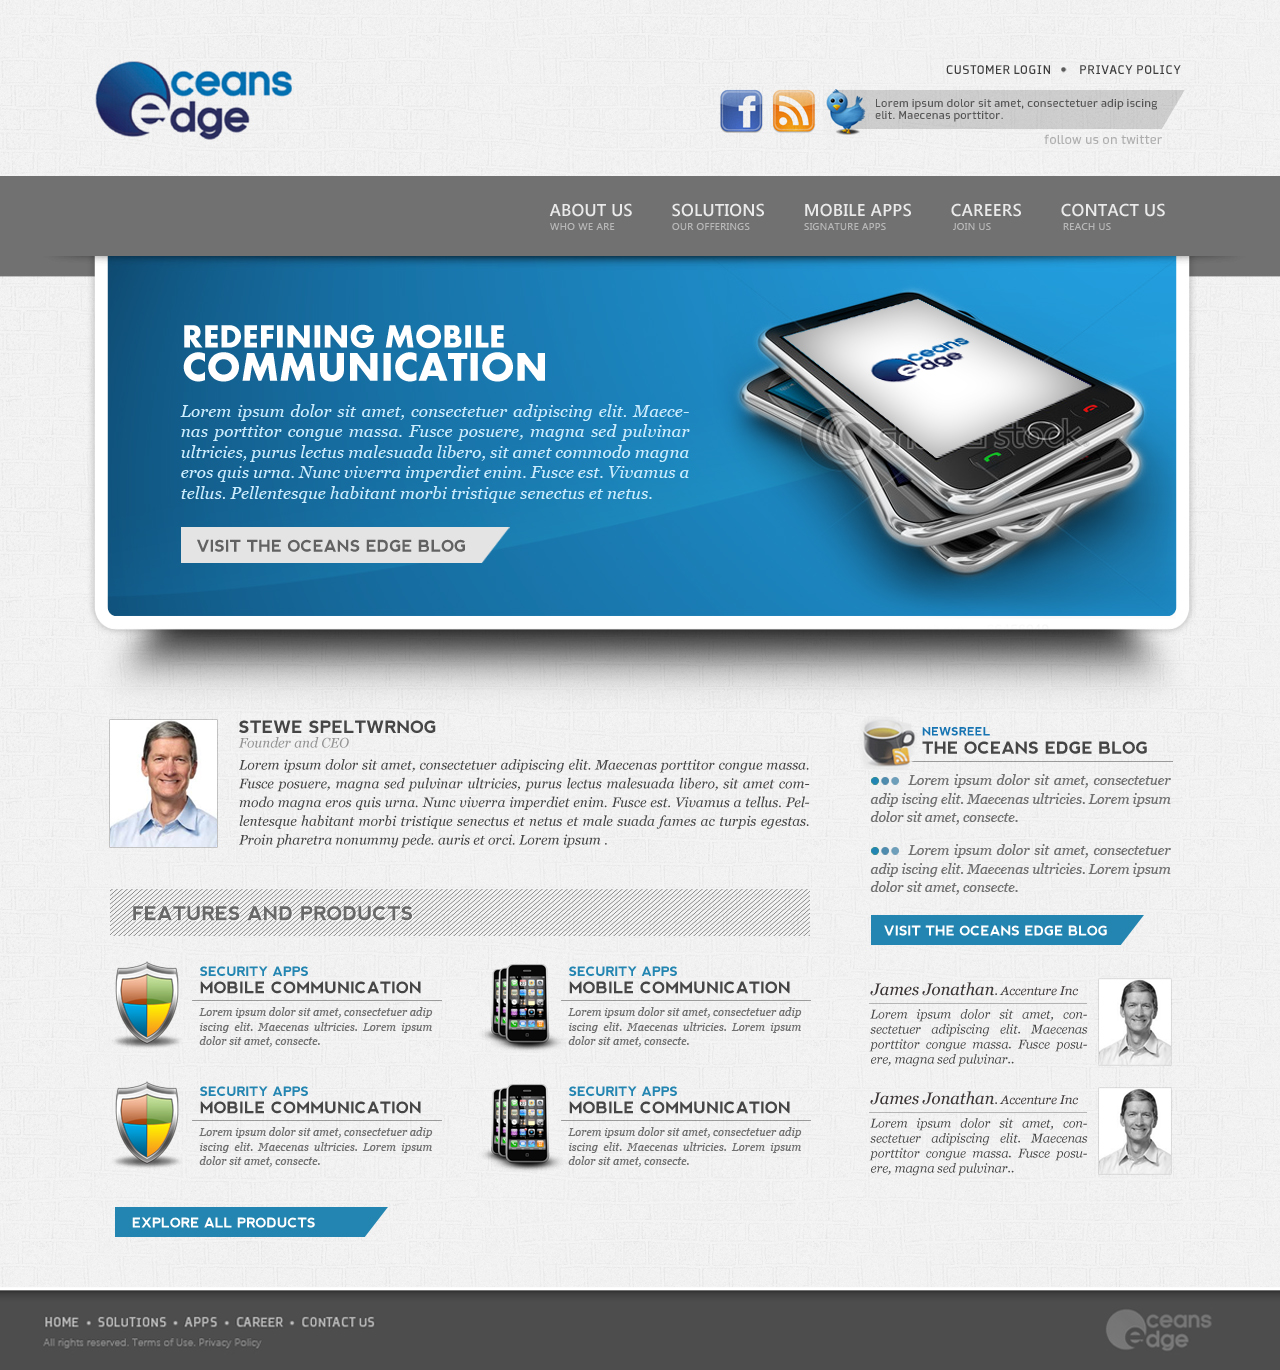 Web Page Design by speltwrnog - Entry No. 16 in the Web Page Design Contest Web Page Design Needed for Company Oceans Edge Inc!.